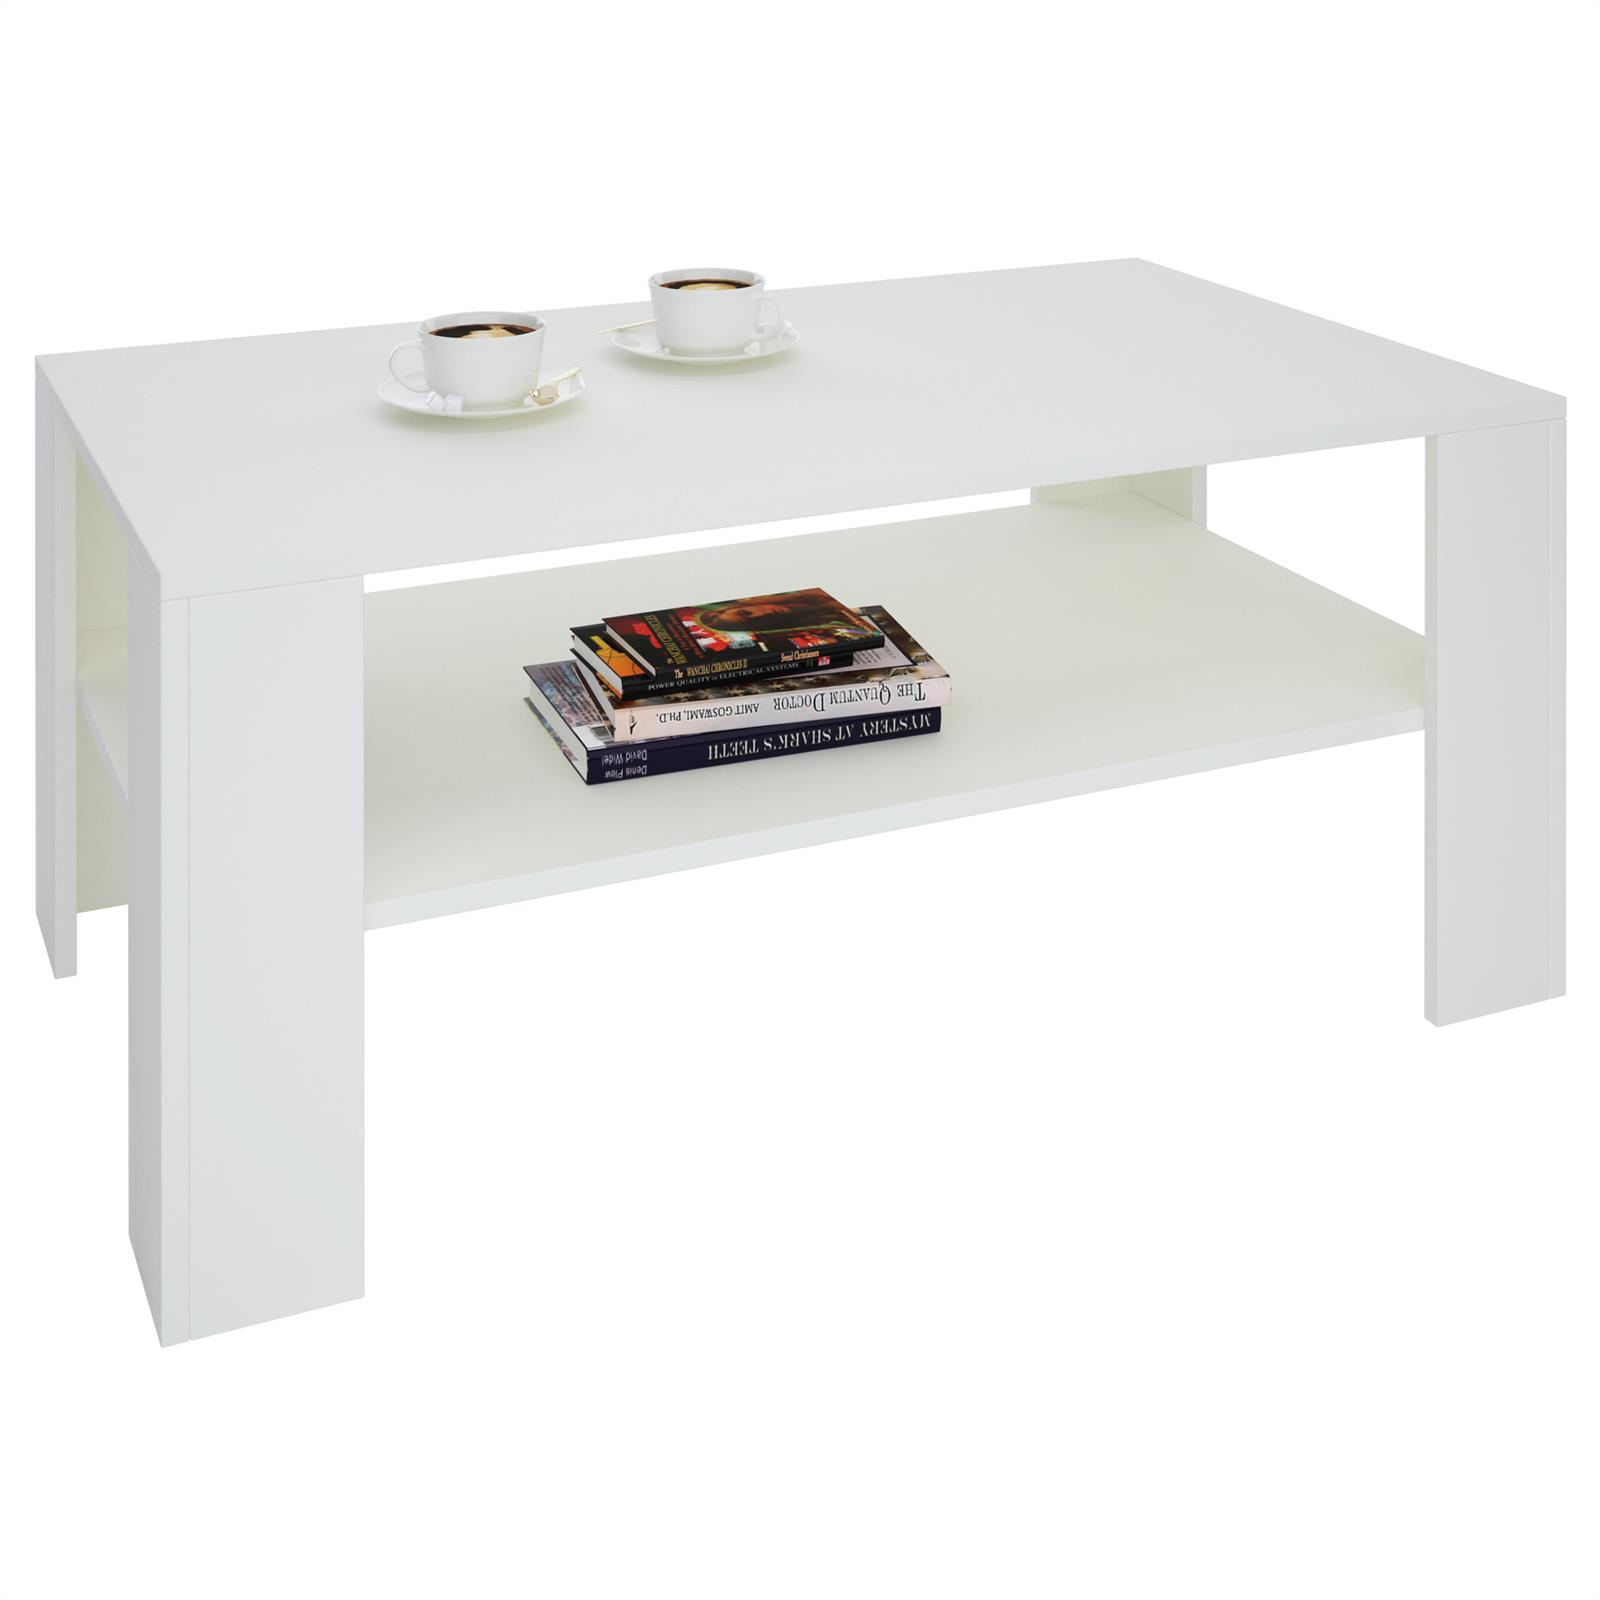 Table basse lorient m lamin blanc mat mobil meubles for Table blanc mat